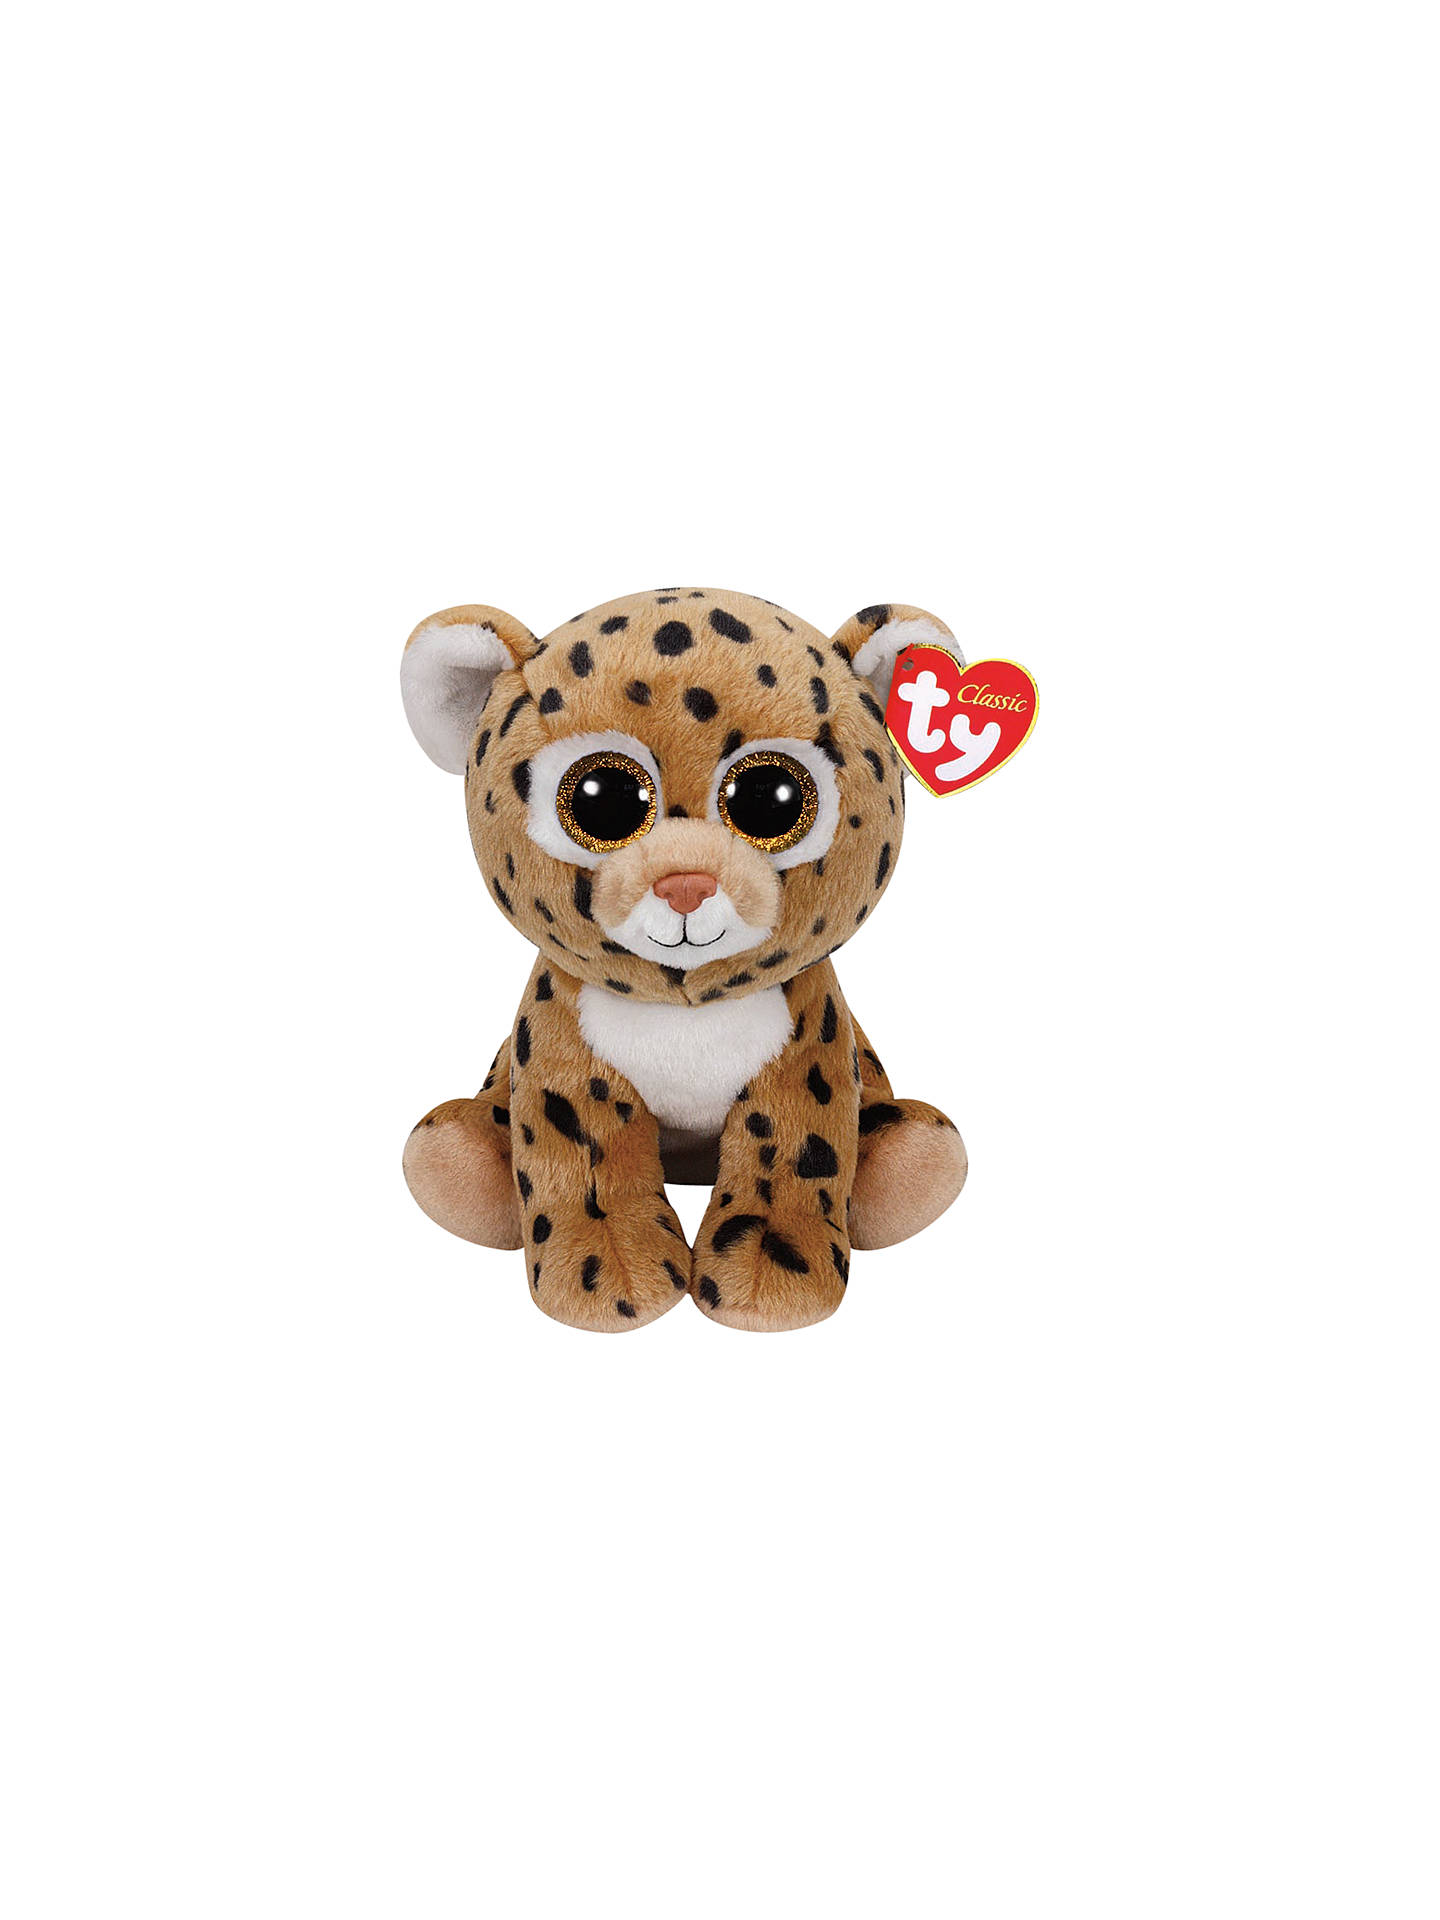 ff9d588526a8 Buy Ty Beanie Babies Freckles Soft Toy